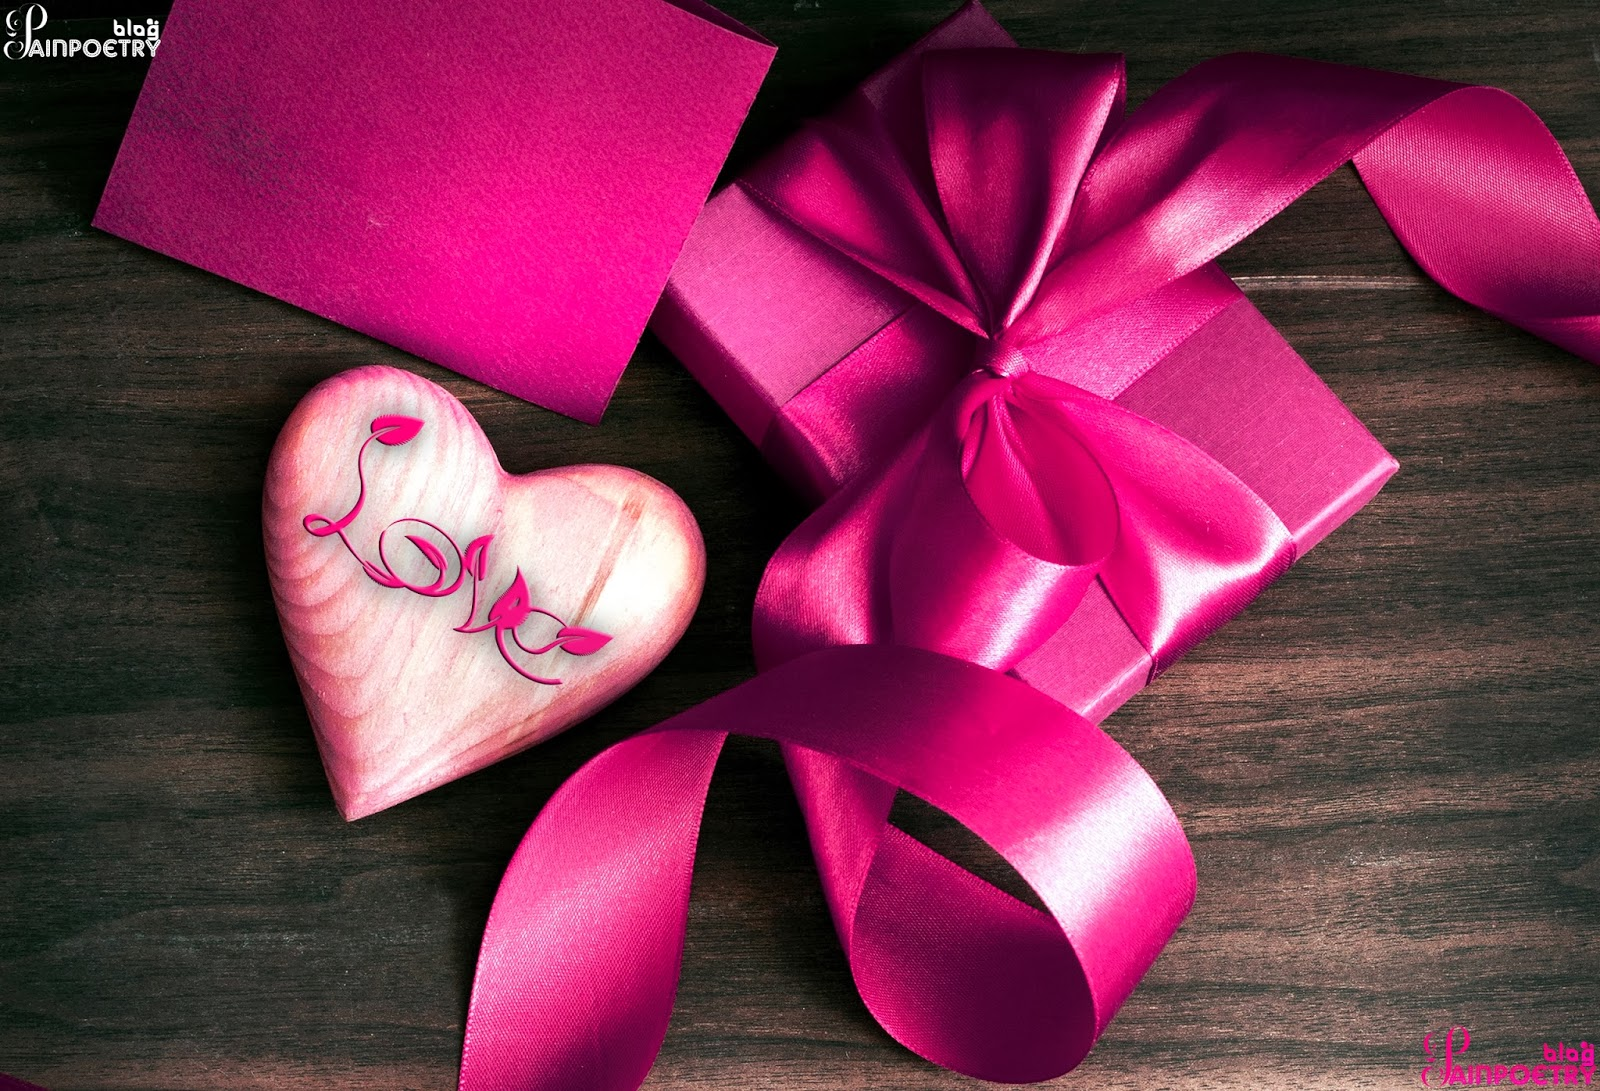 I-Love-You-Wallpaper-With-A-Heart-And-A-Gift-Image-HD-Wide